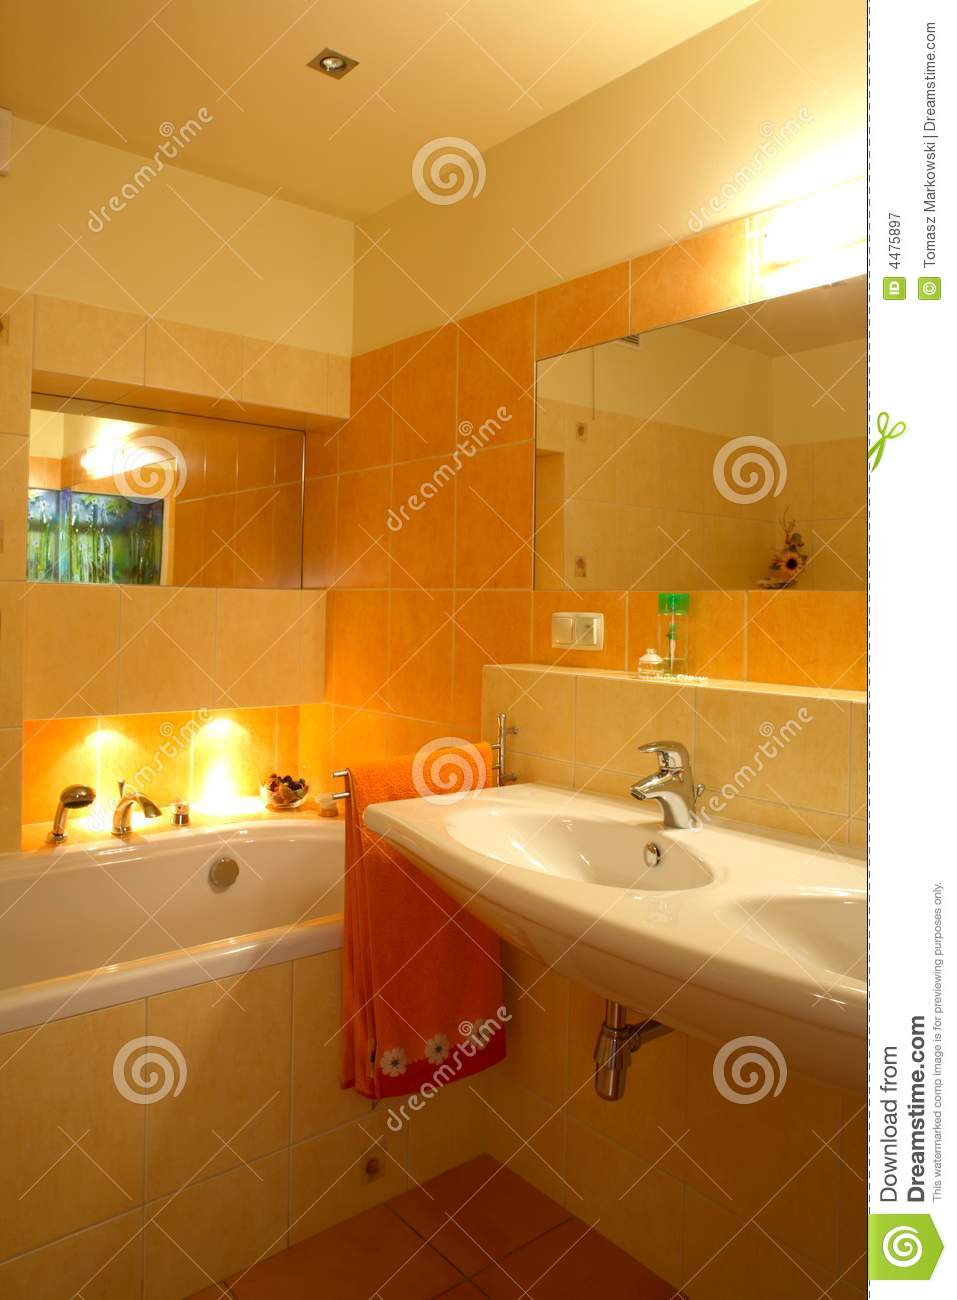 Orange Bathroom Stock Image Image Of Wall Interior